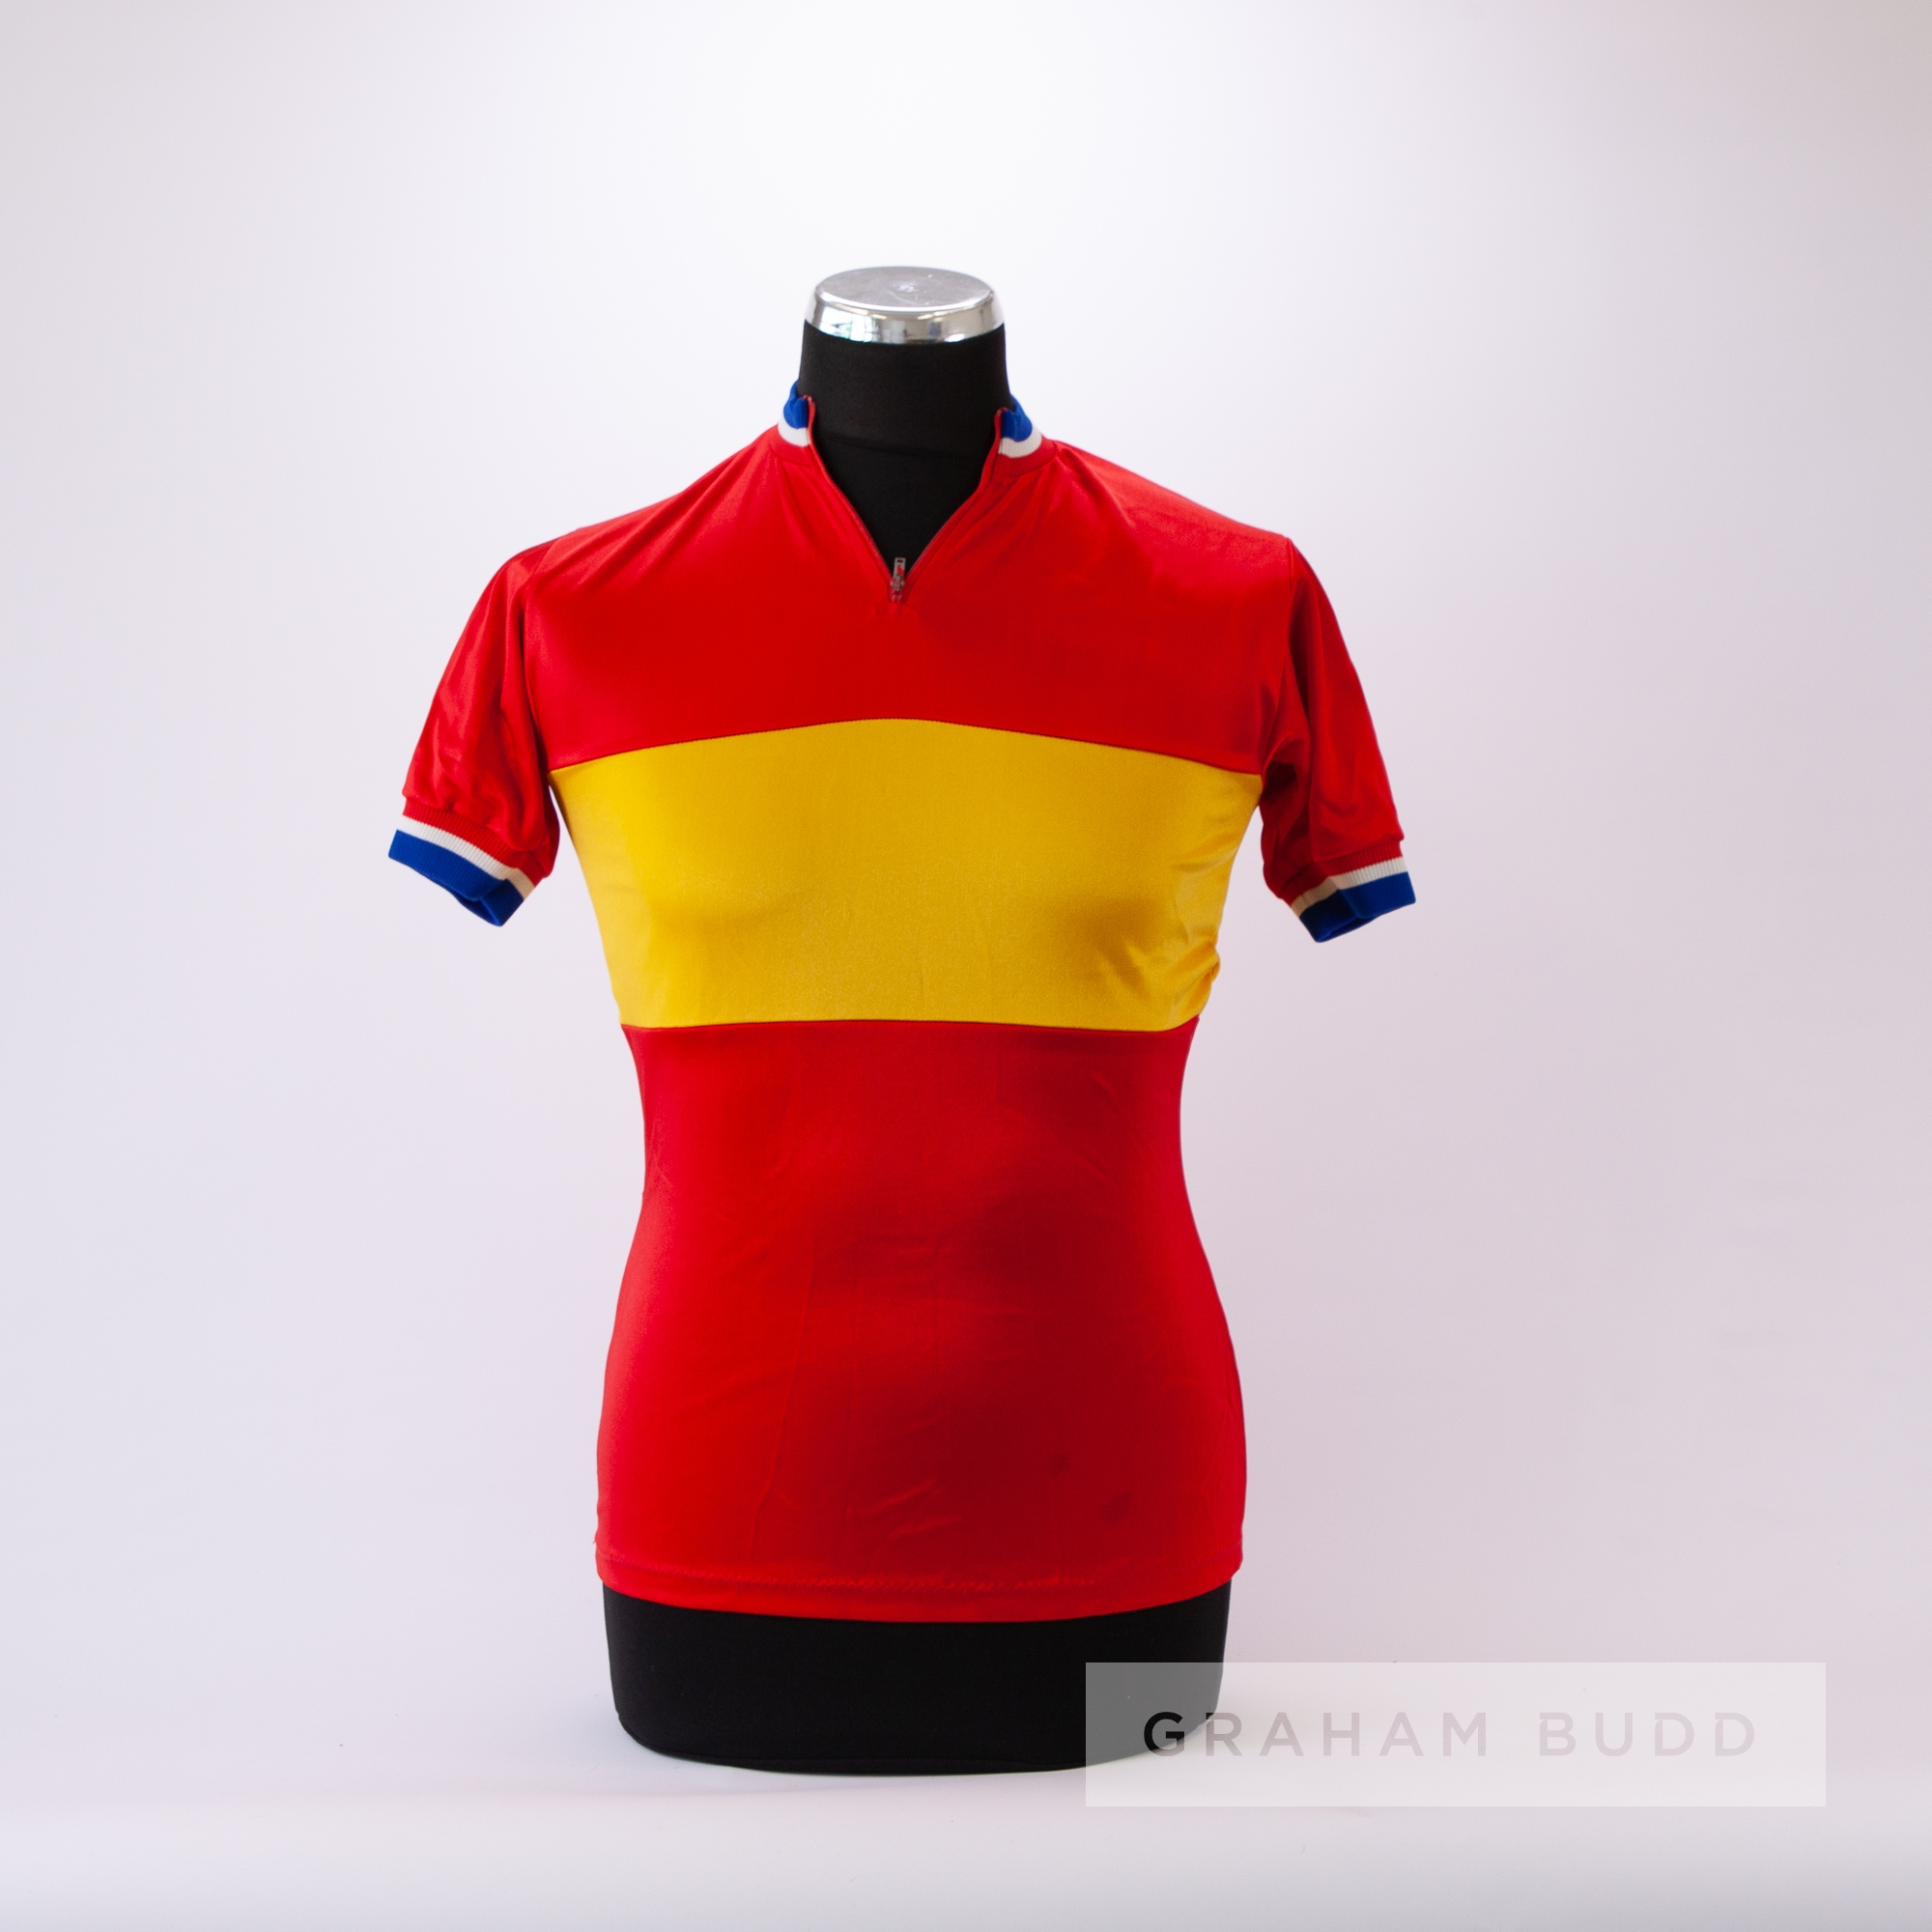 1971 red and yellow vintage Italian De Rigueur Cycling track and trial race jersey, scarce,